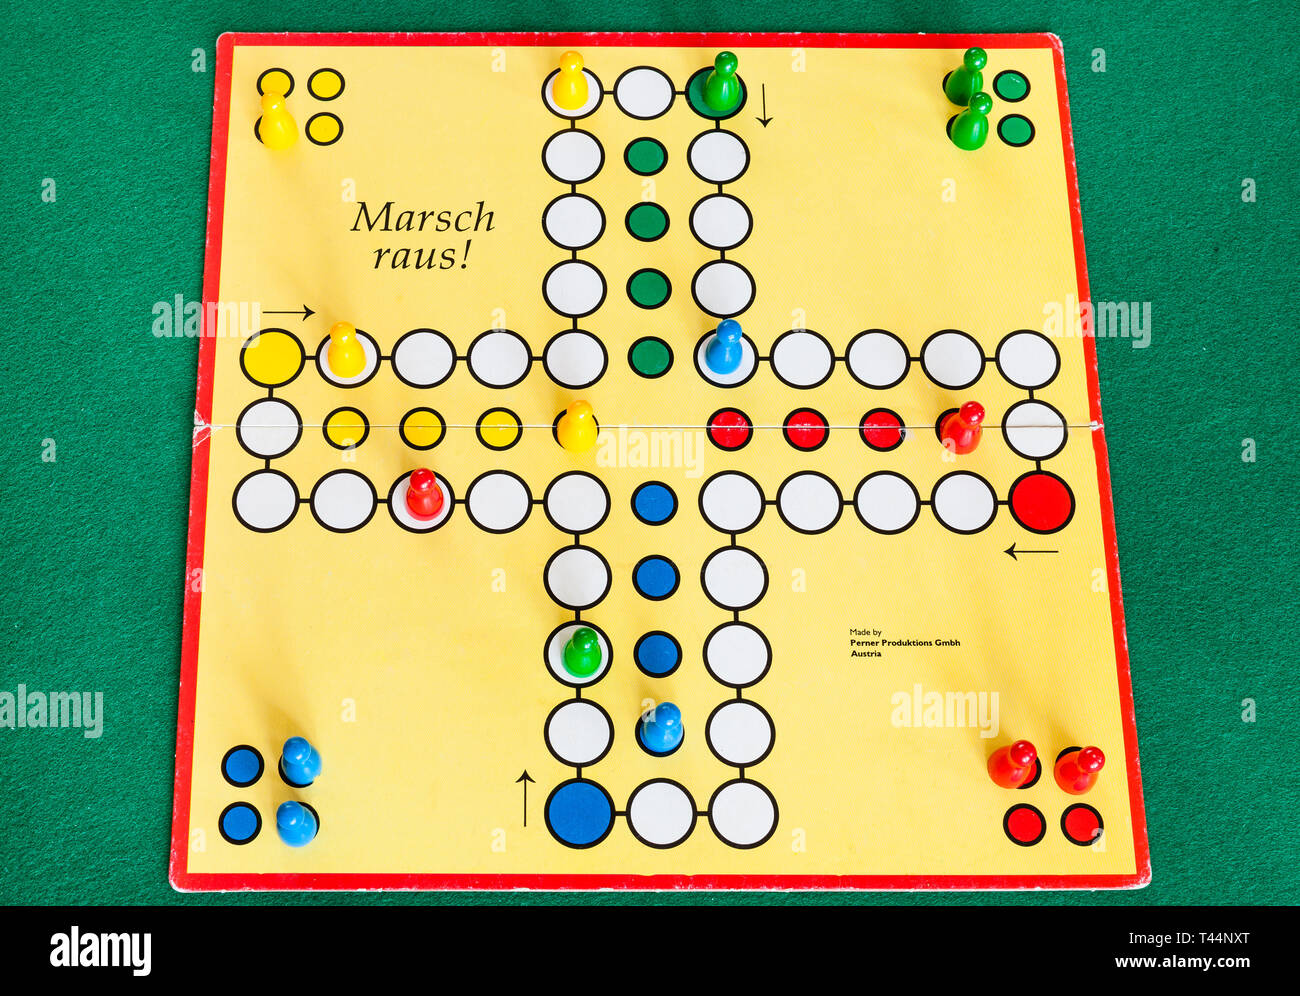 MOSCOW, RUSSIA - APRIL 2, 2019: gameboard of Marsch Raus ! board game on green baize table. This board game is Cross and circle game, an adaptation of - Stock Image